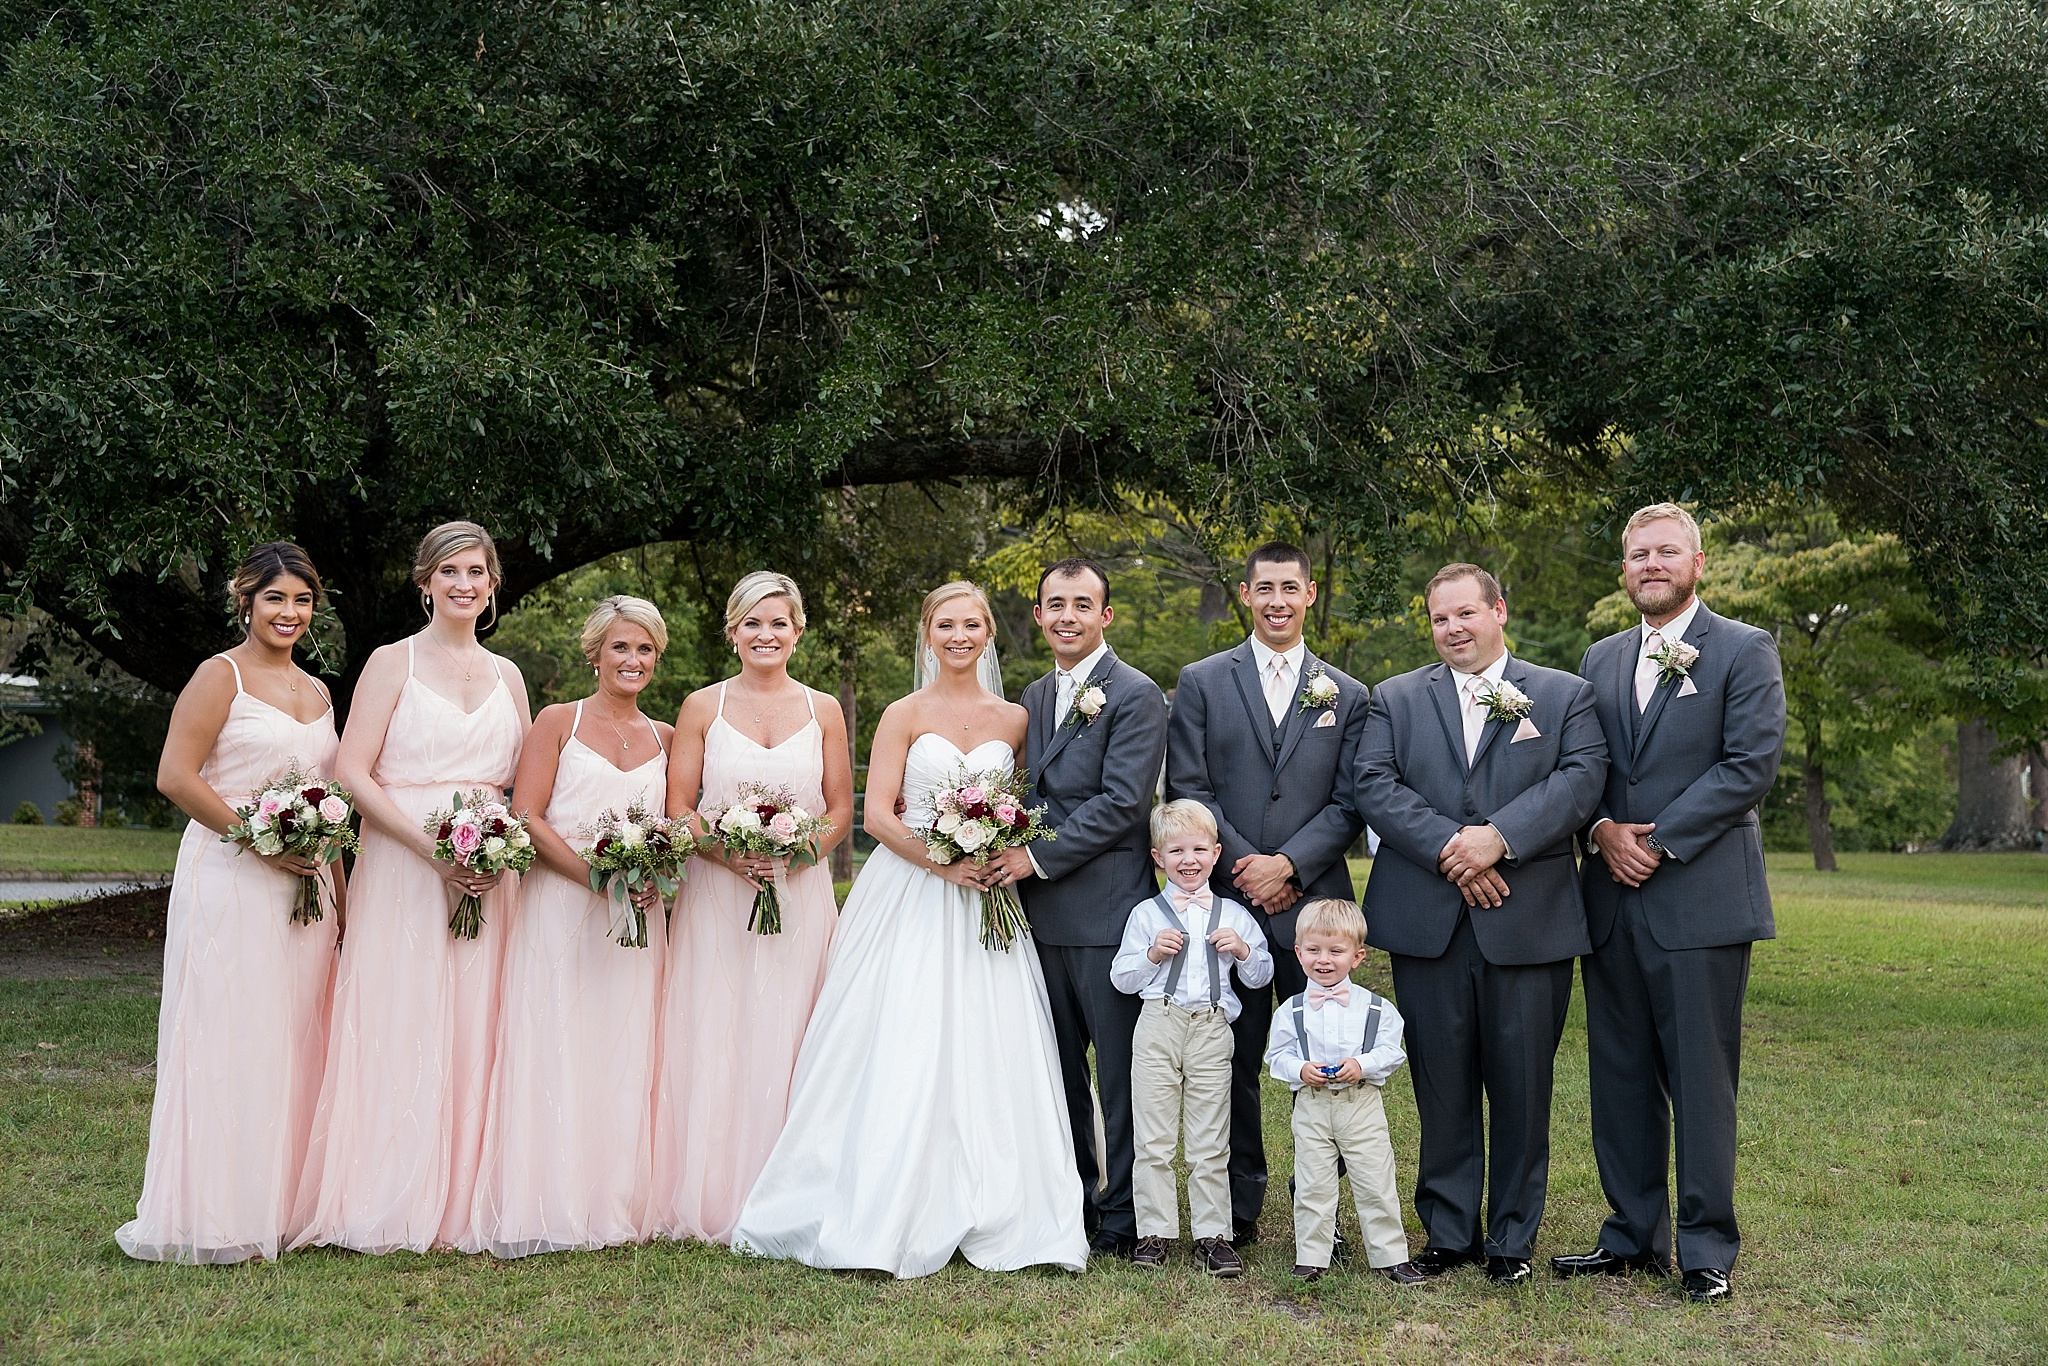 Williamston-NC-Wedding-Photographer-191.jpg